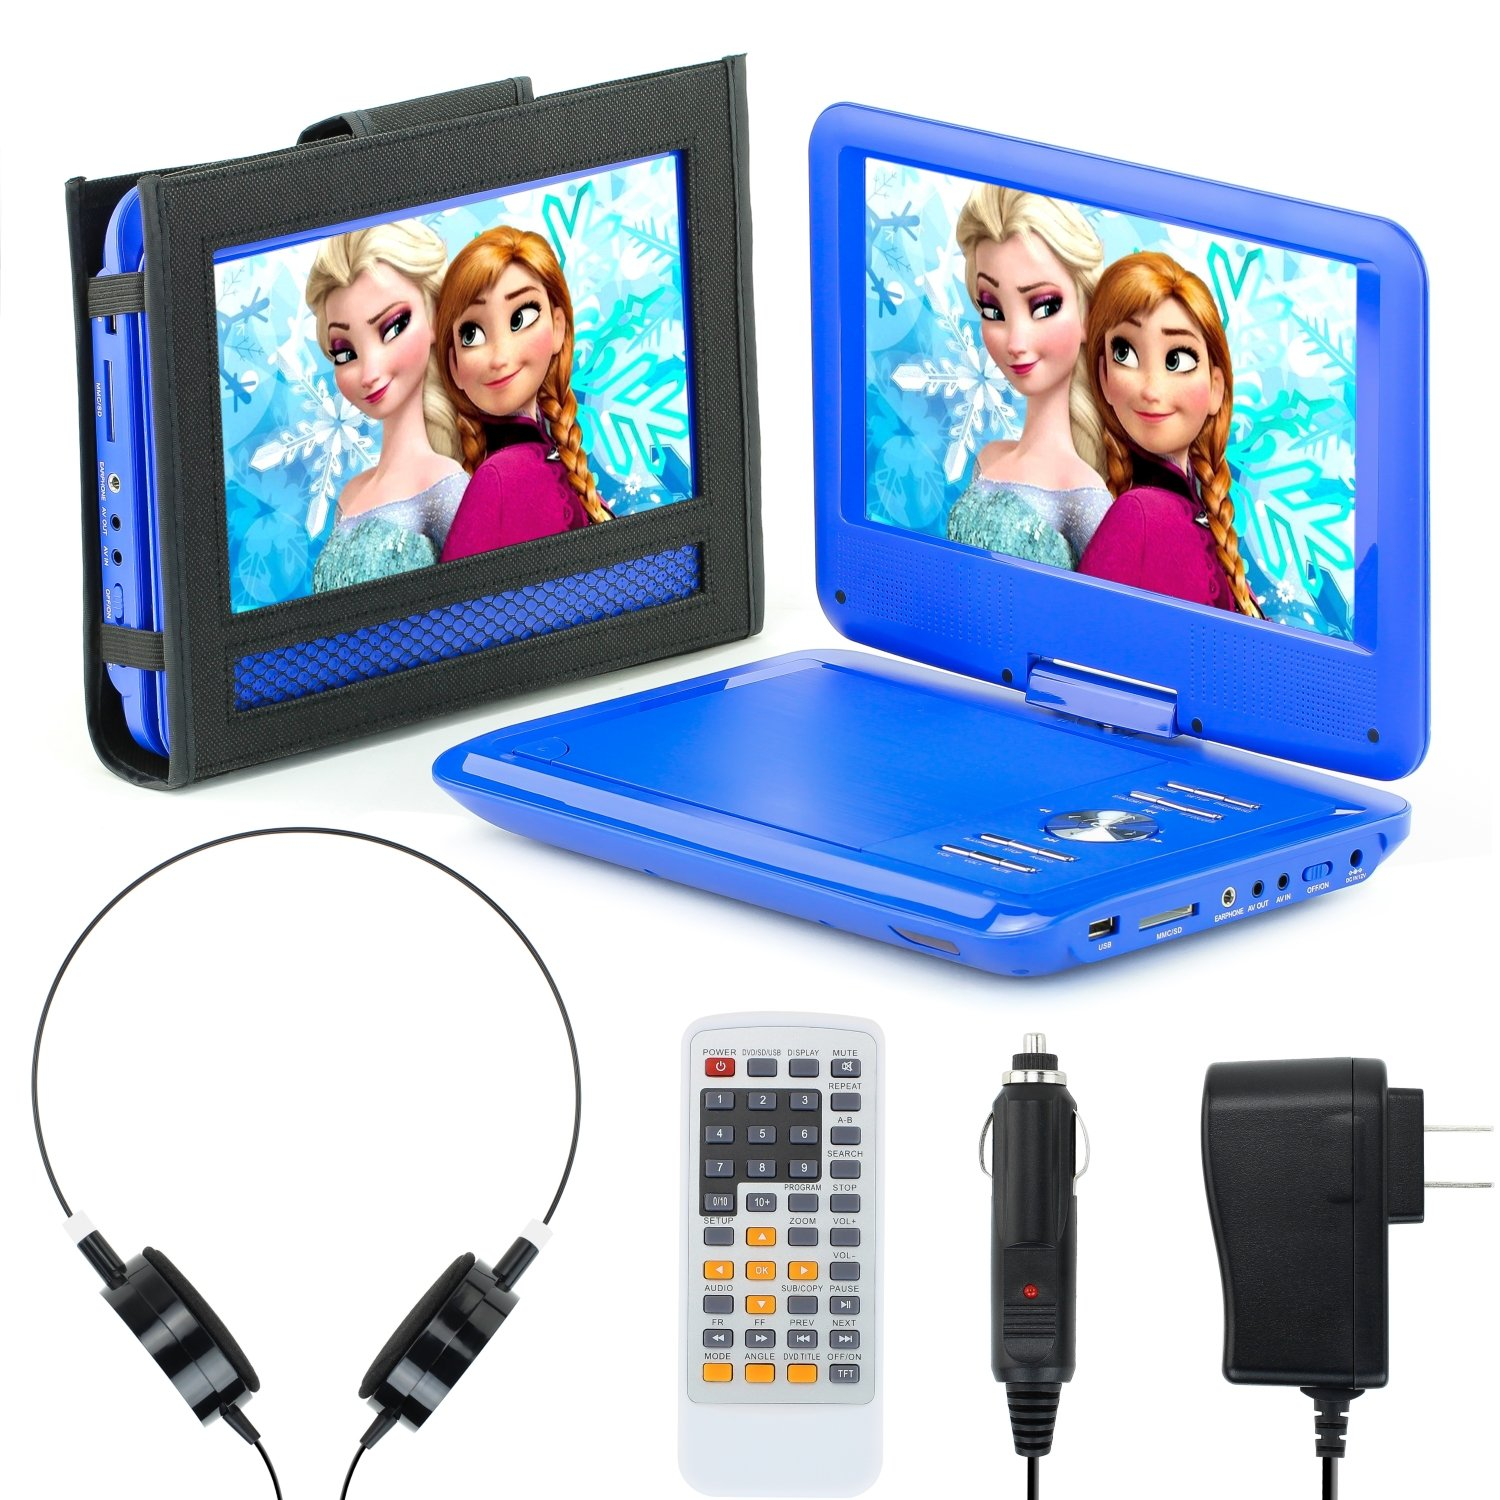 Portable DVD Player for Car, Plane & more - 7 Car & Travel Accessories Included ($35 Value) - 9'' Swivel Screen - Whopping 6 Hour Battery Life - Perfect Portable DVD Player for Kids